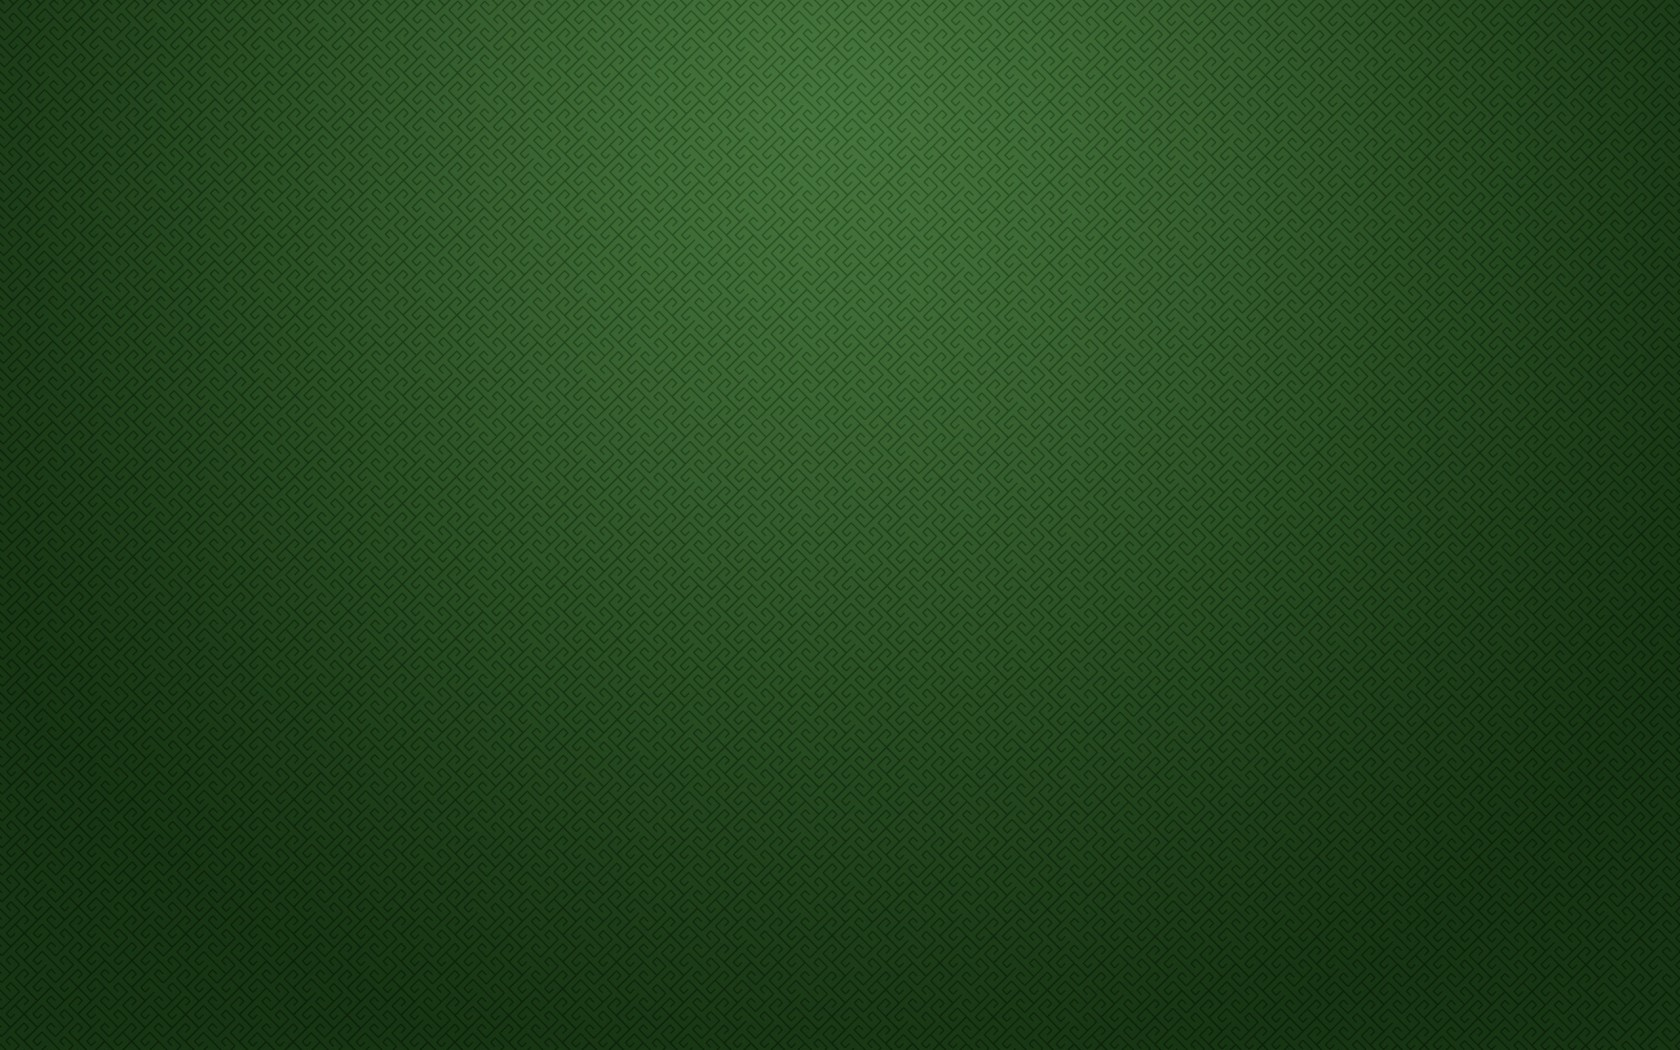 solid-colors-green-wallpaper-3.jpg